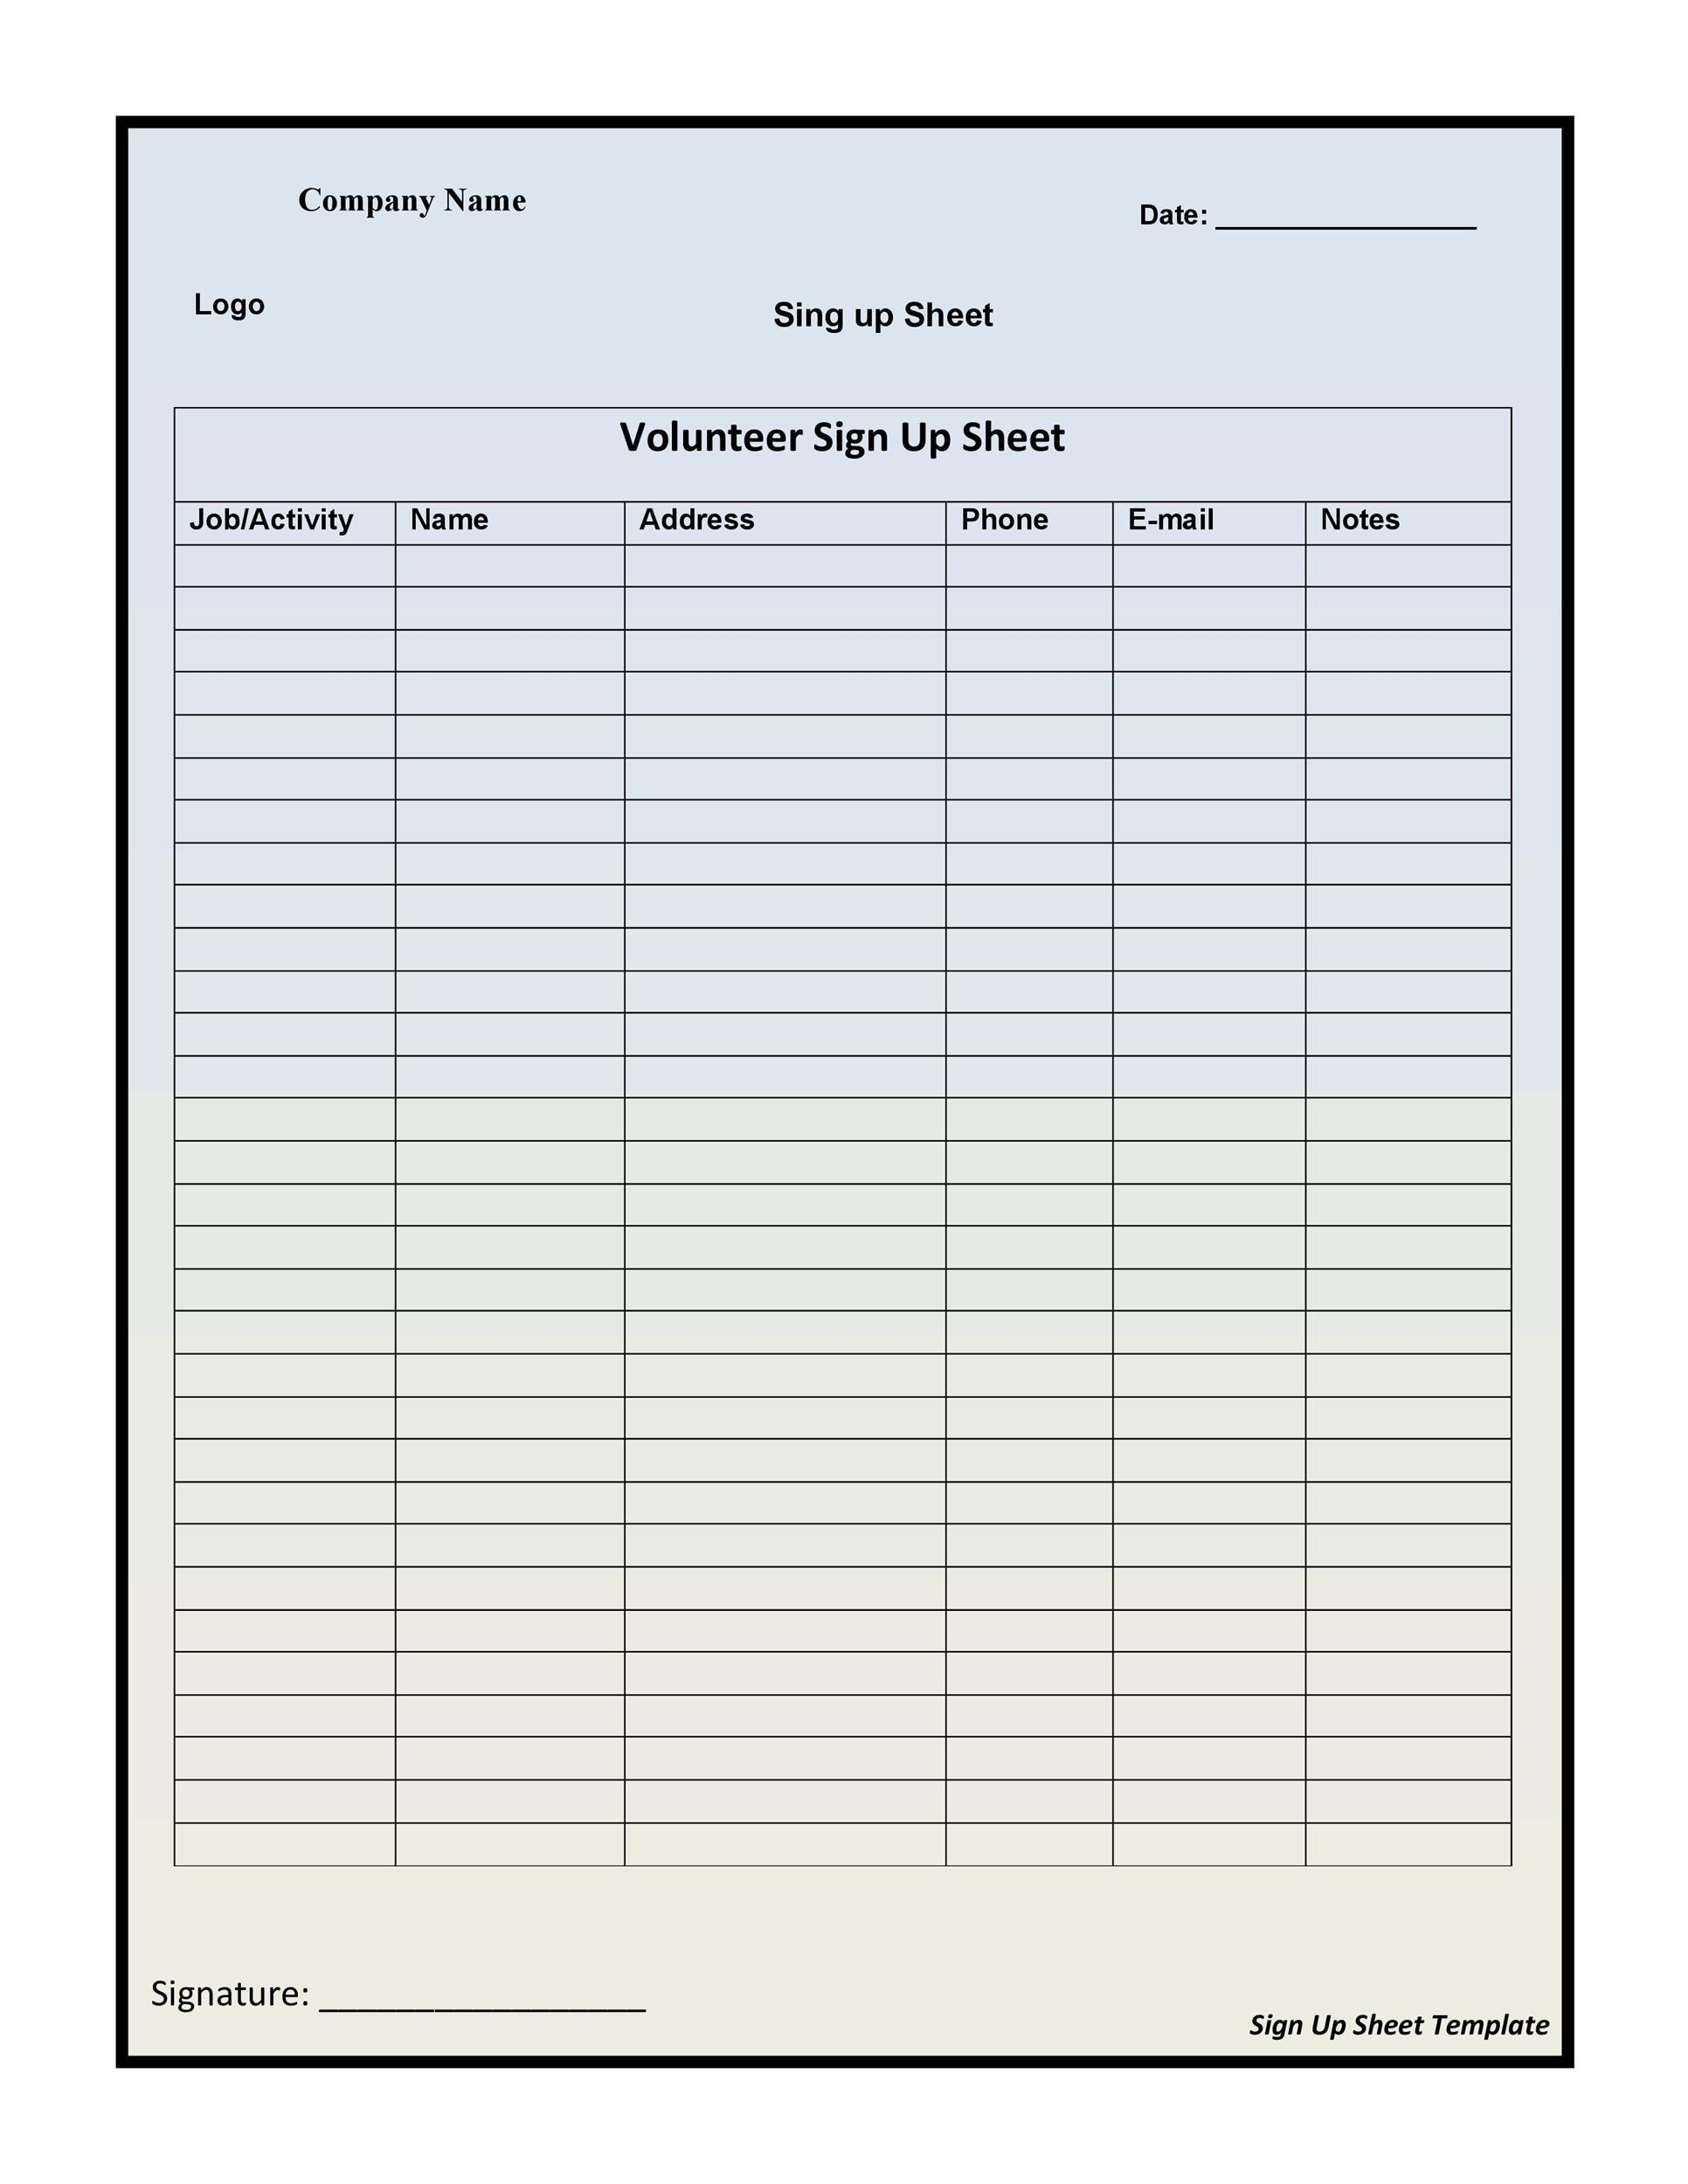 Free Sign Up Sheet Template 33